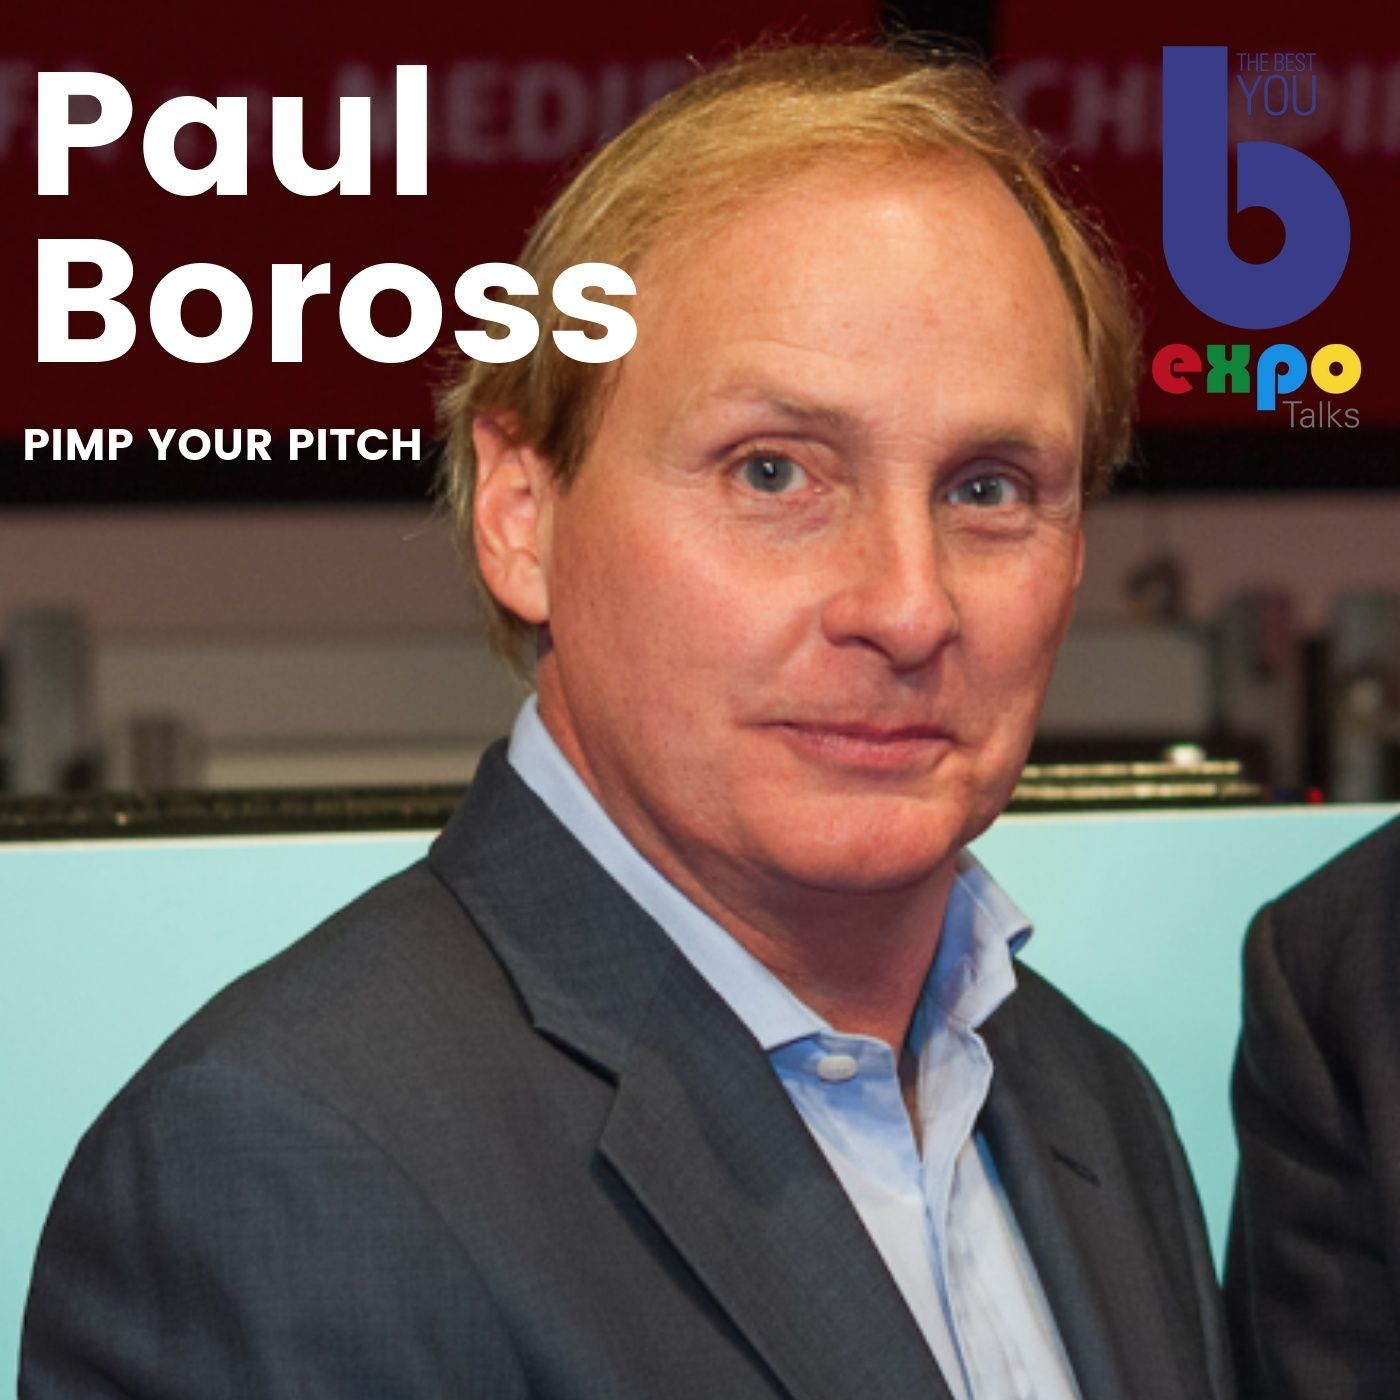 Listen to Paul Boross at The Best You EXPO